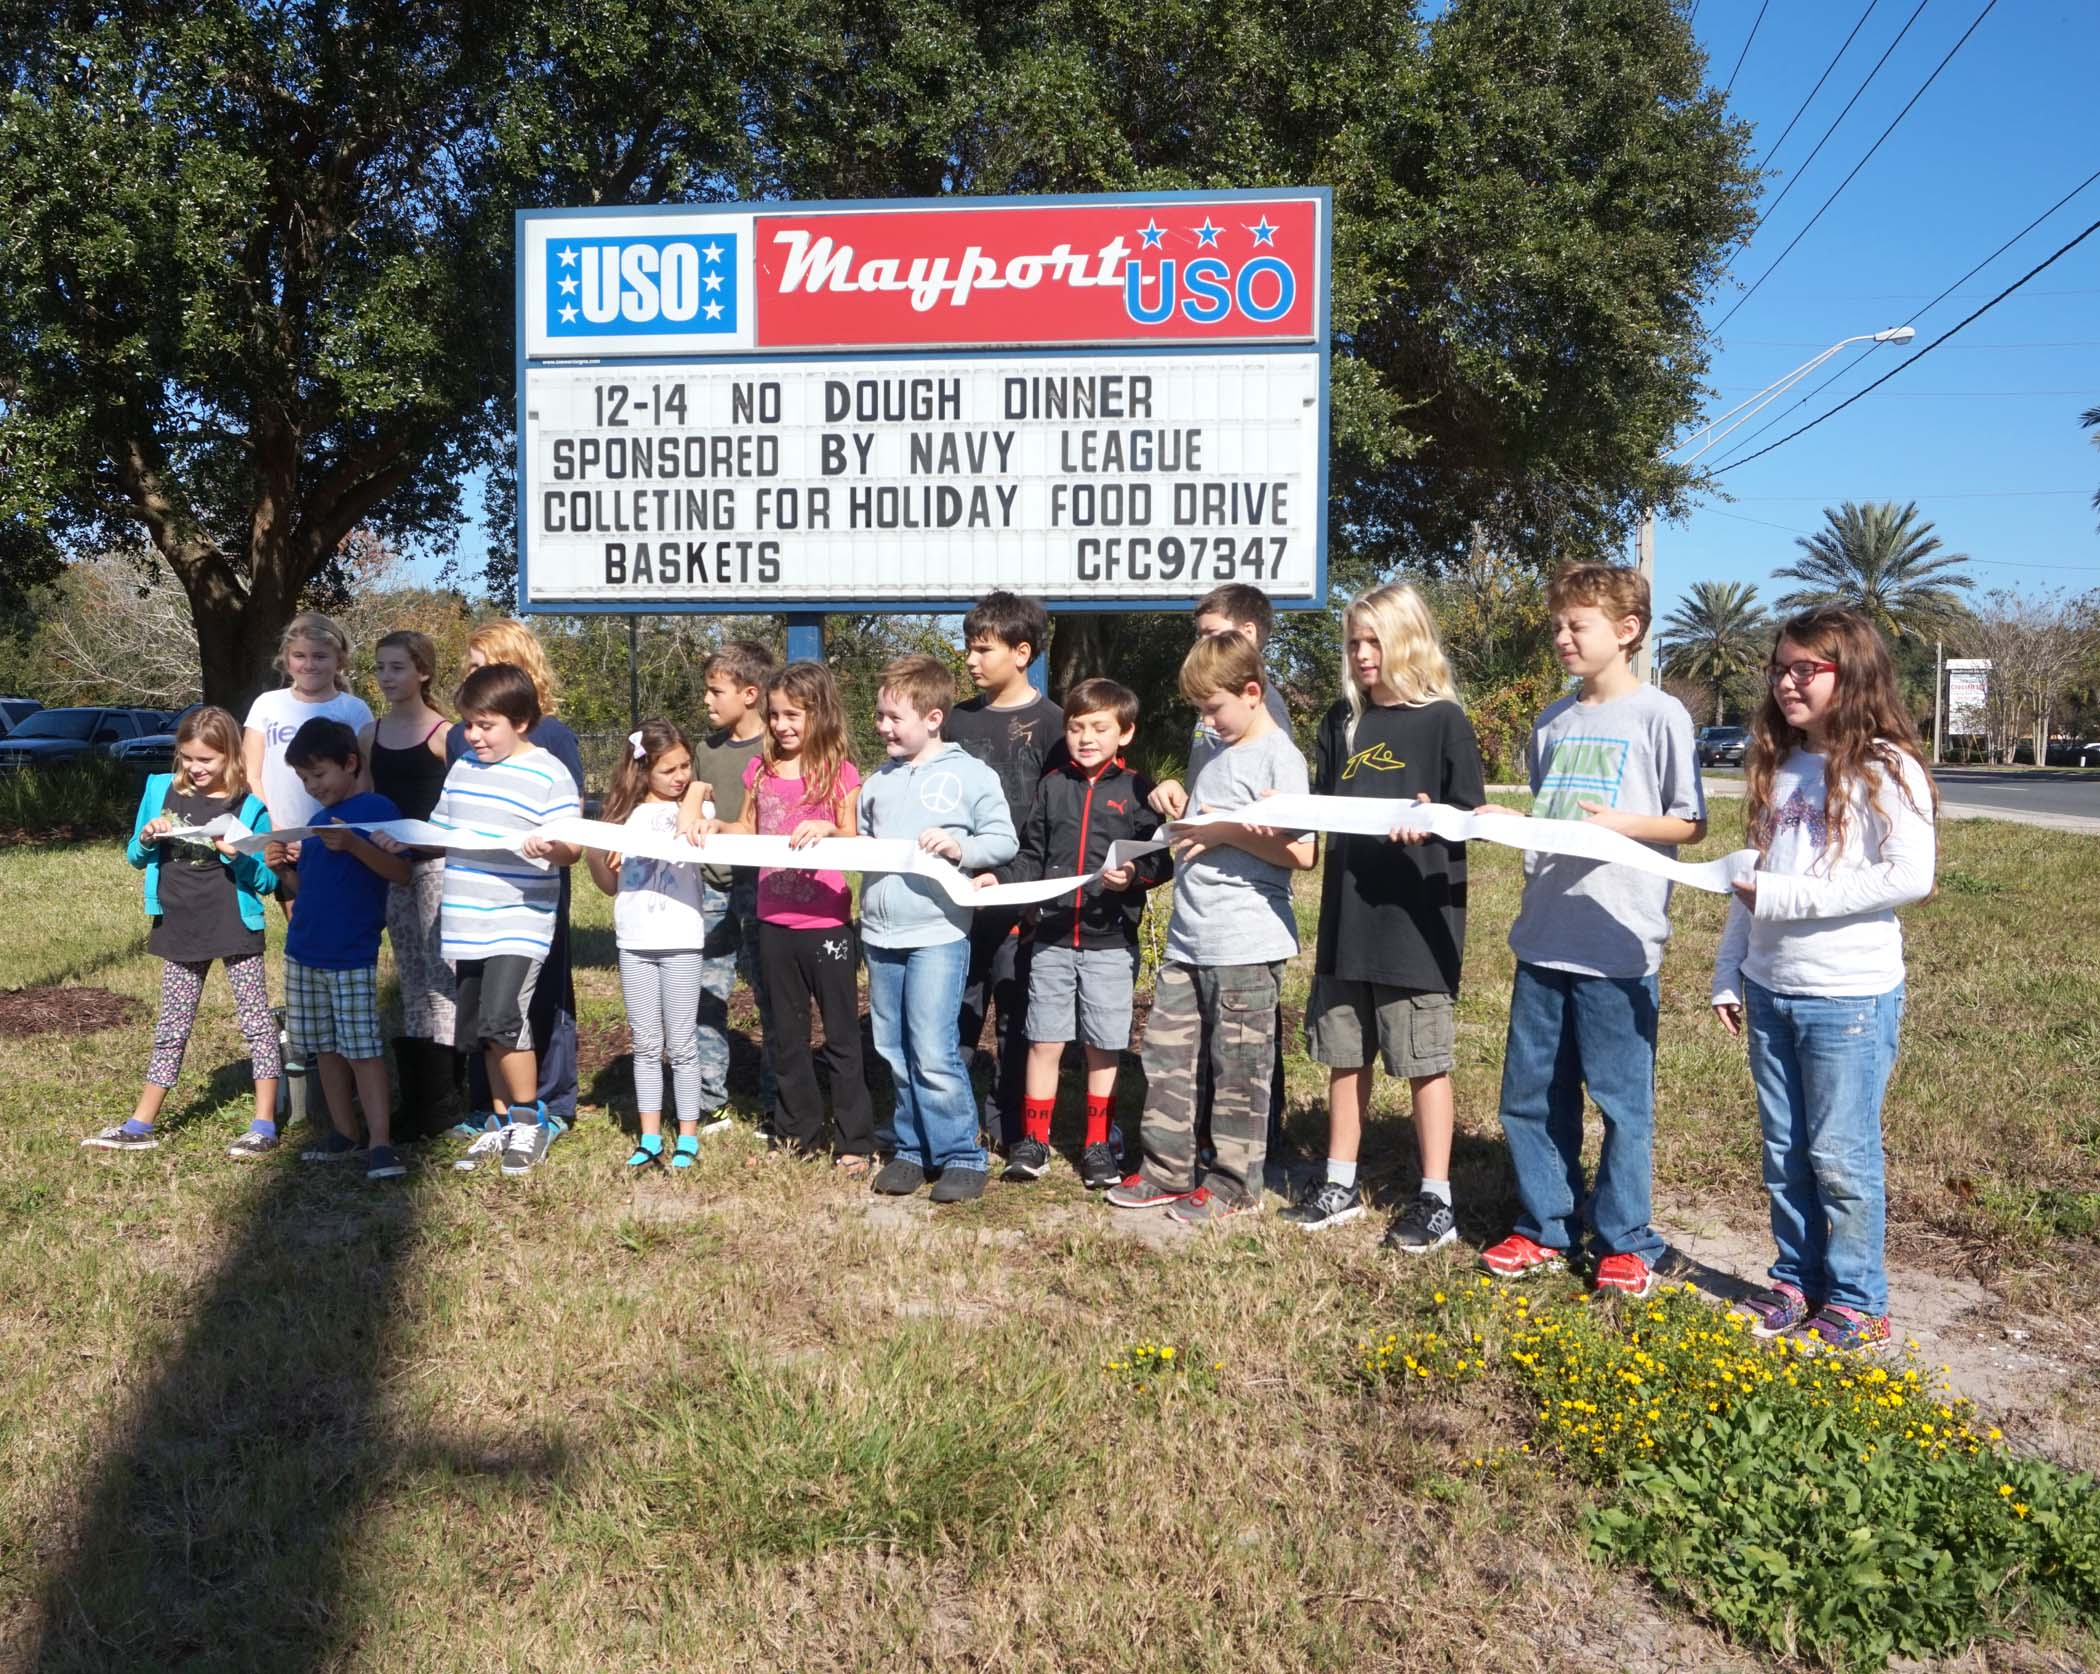 After shopping for and delivering $1,290 worth of food, the Elementary students posed with the receipt outside the USO Mayport Center on Friday.